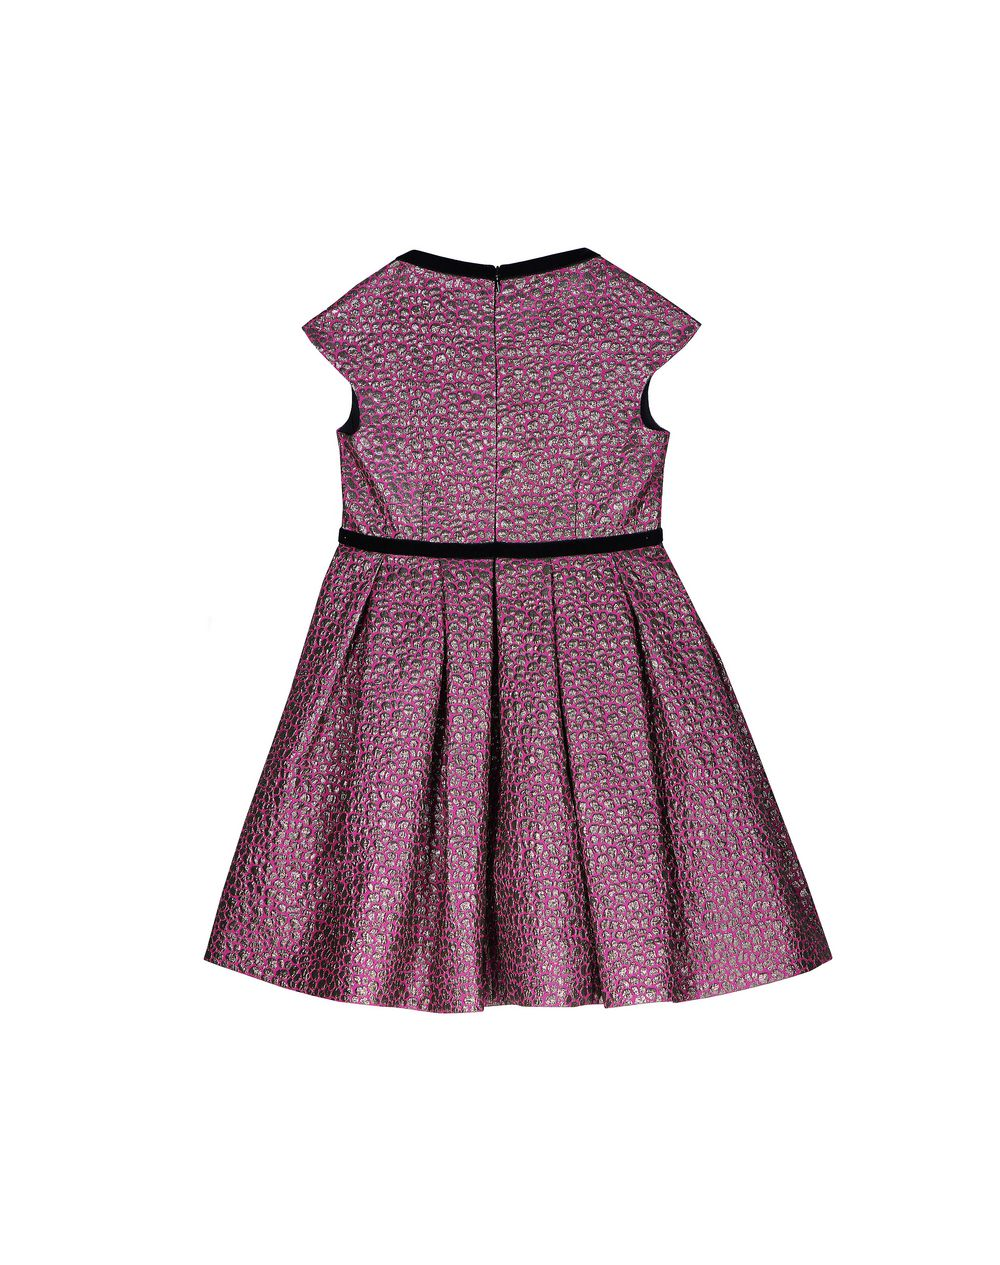 FUCHSIA AND GOLD JACQUARD DRESS - Lanvin